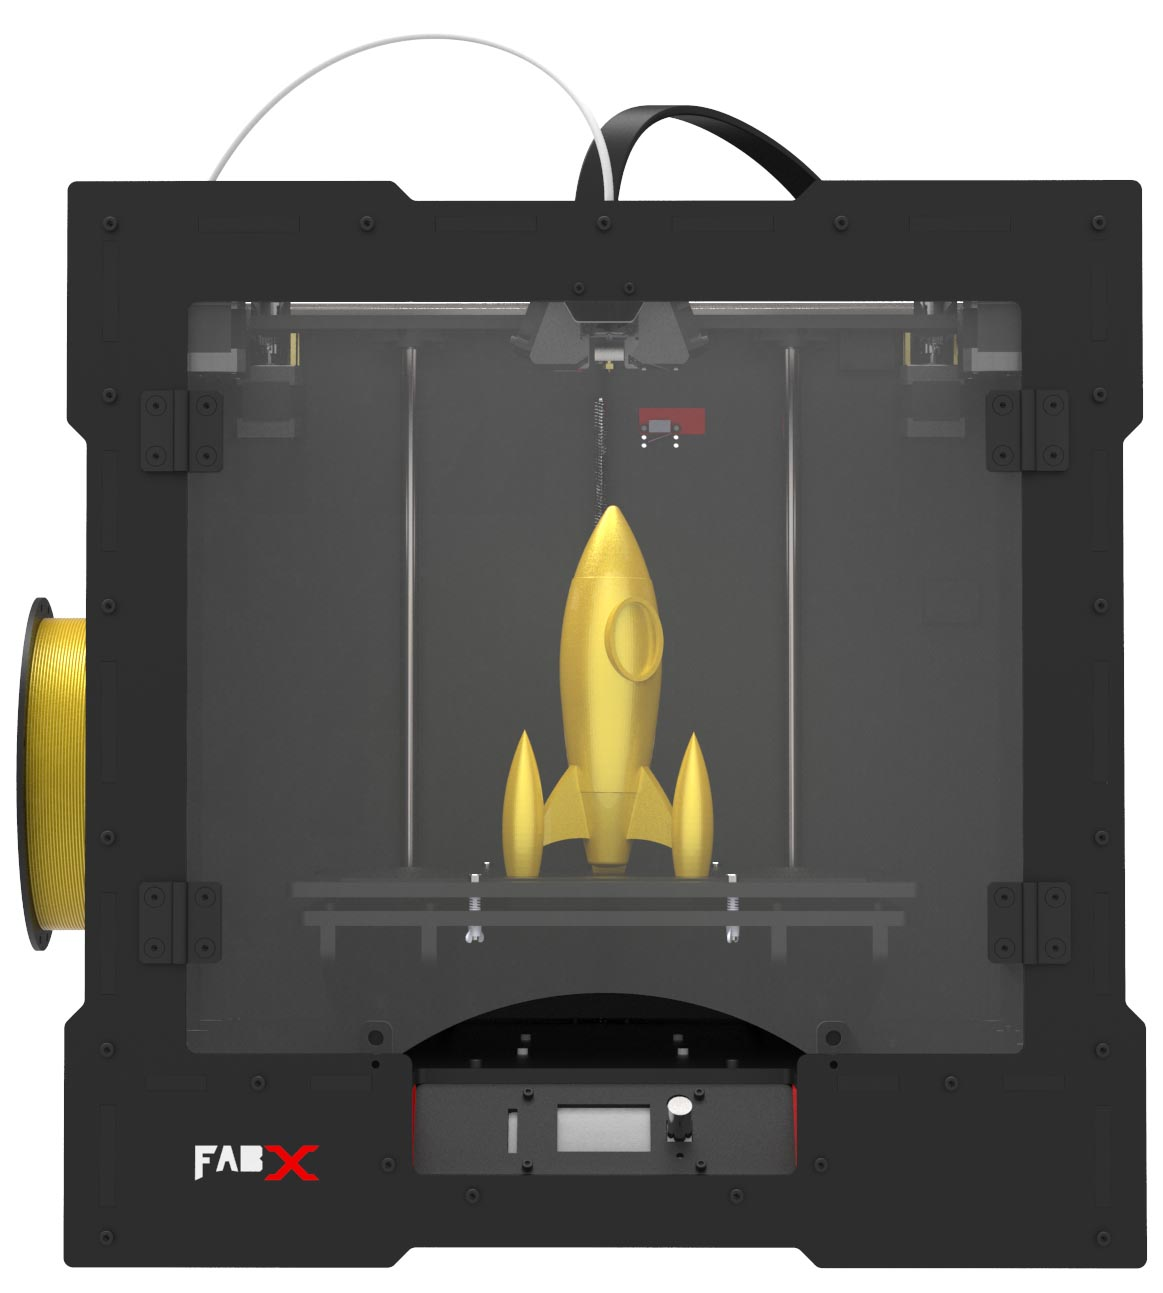 LFabXL 3D Printer Education